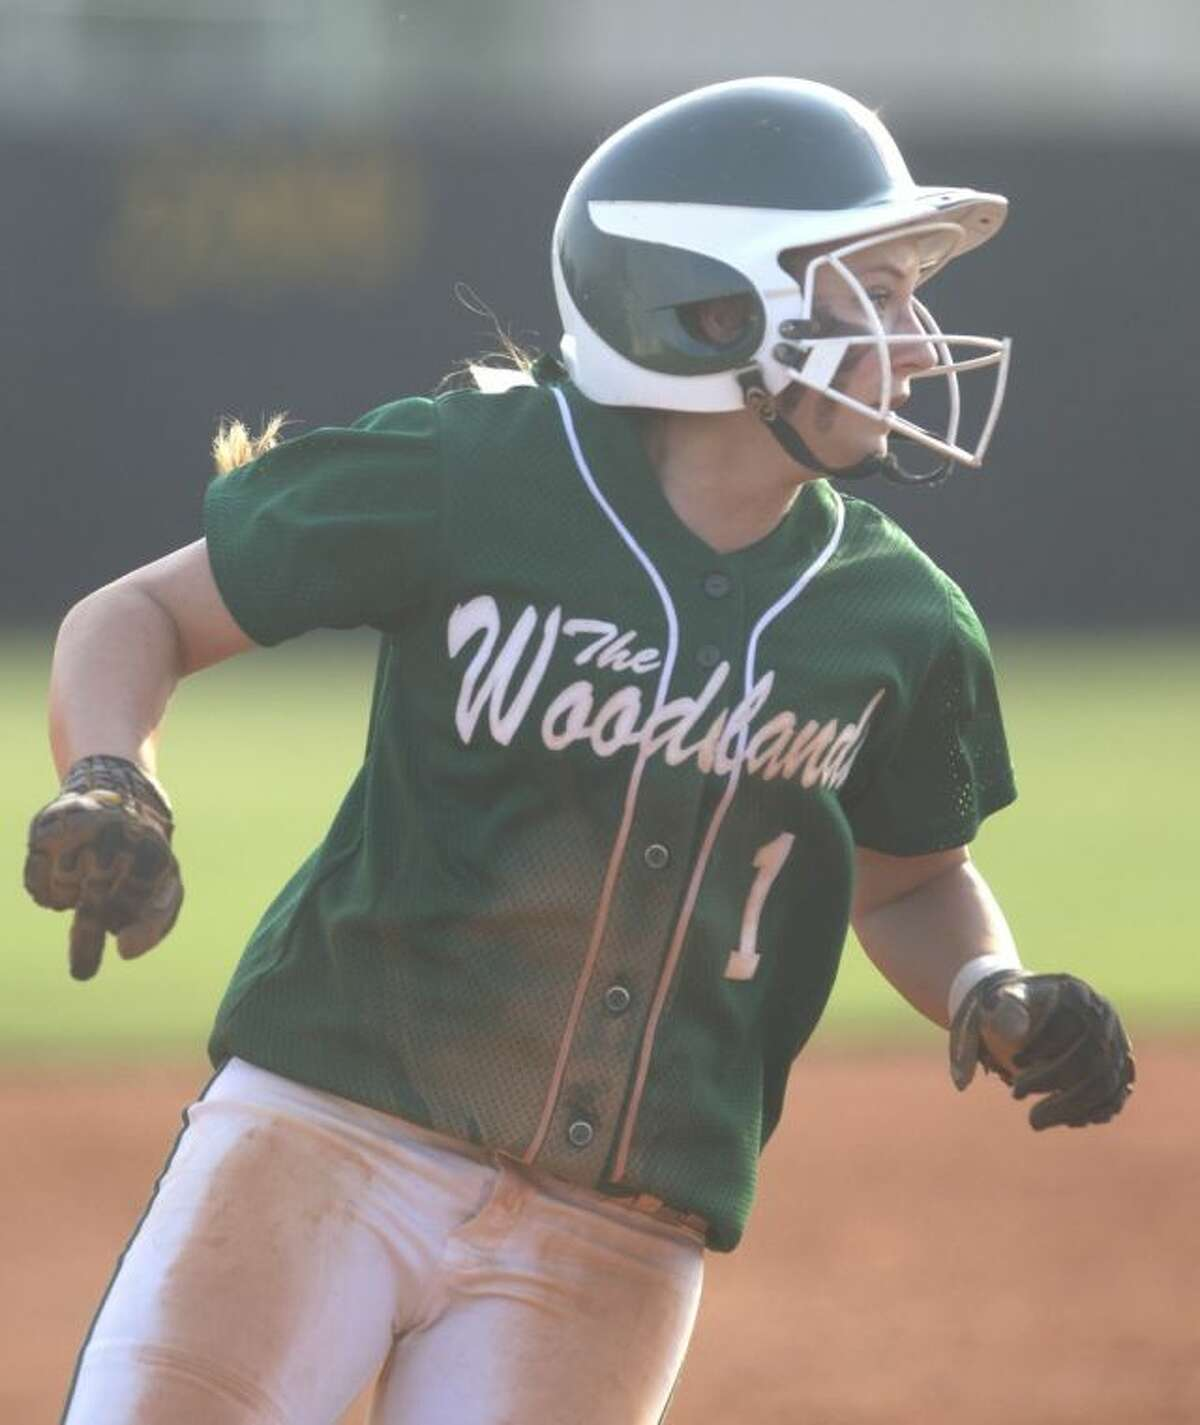 The Woodlands' Aubrey Leach watches a play at first after rounding third base during Game 2 of a bi-district playoff series against Klein Collins on Saturday at Klein Oak High School. To view or purchase this photo and others like it, visit HCNpics.com.